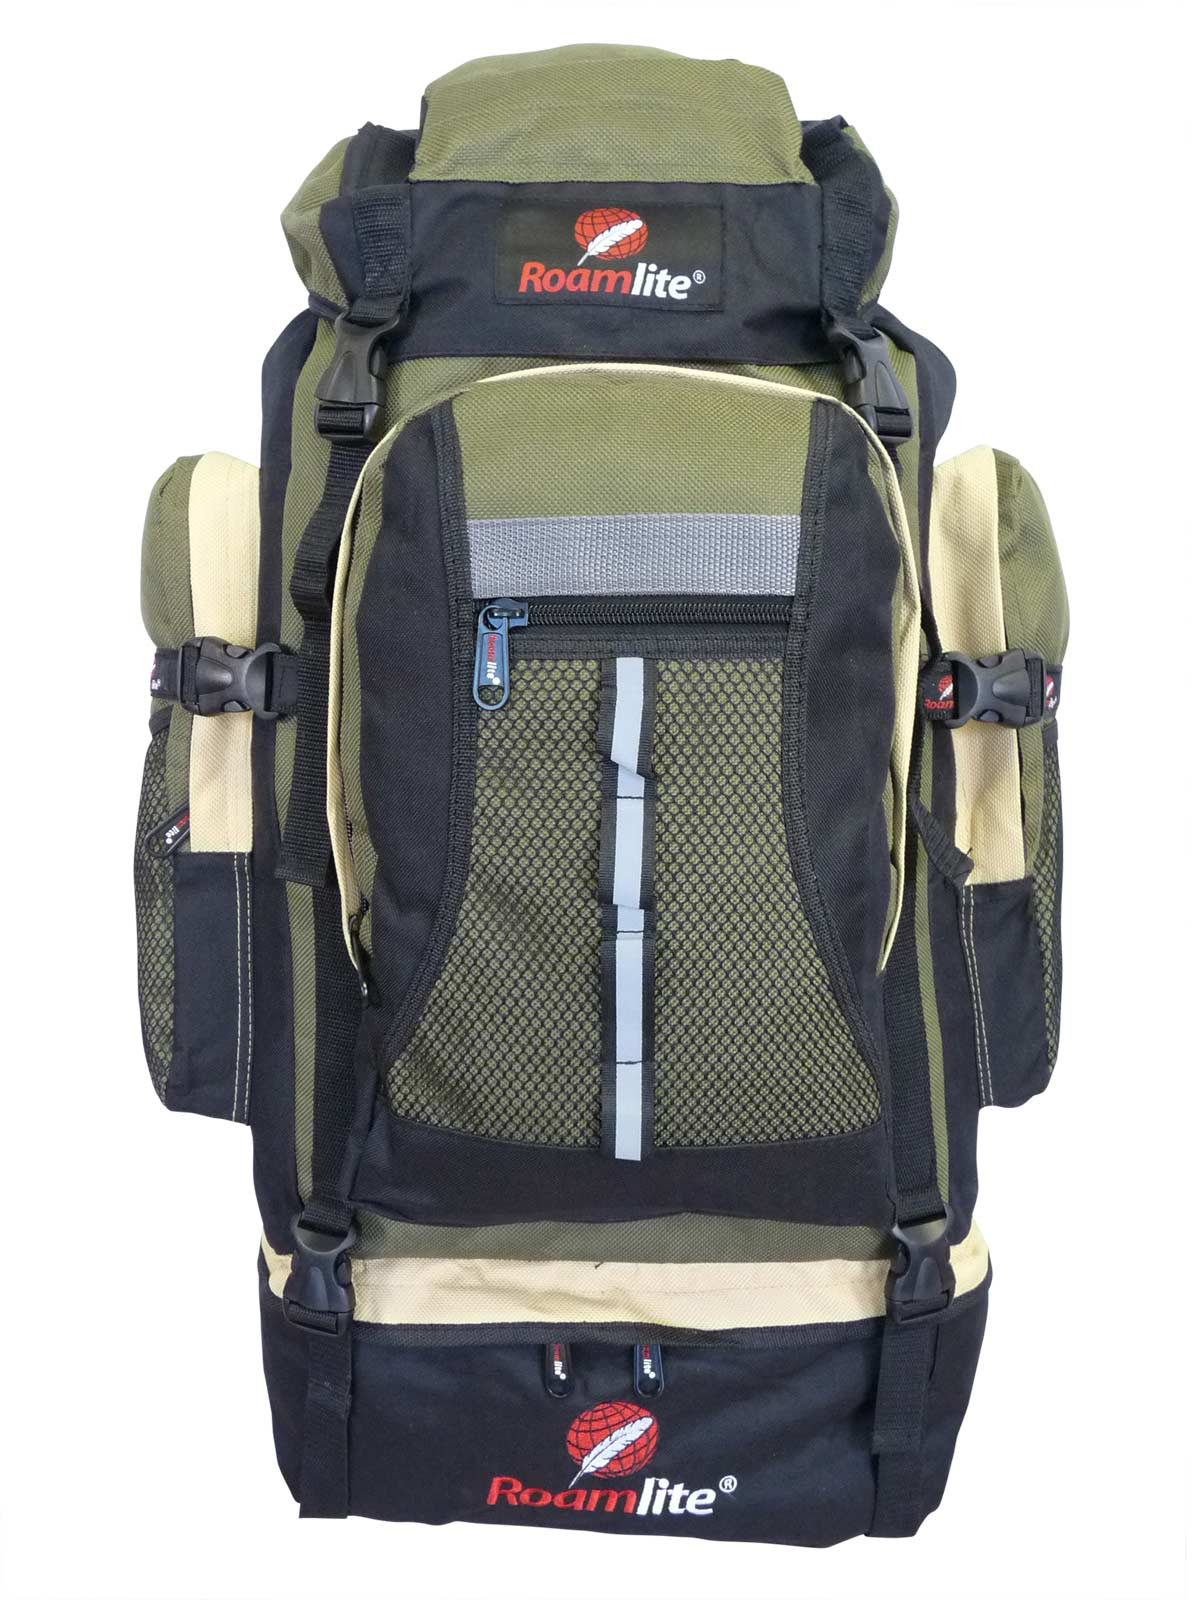 Festival Camping Backpack Bag RL02KGf